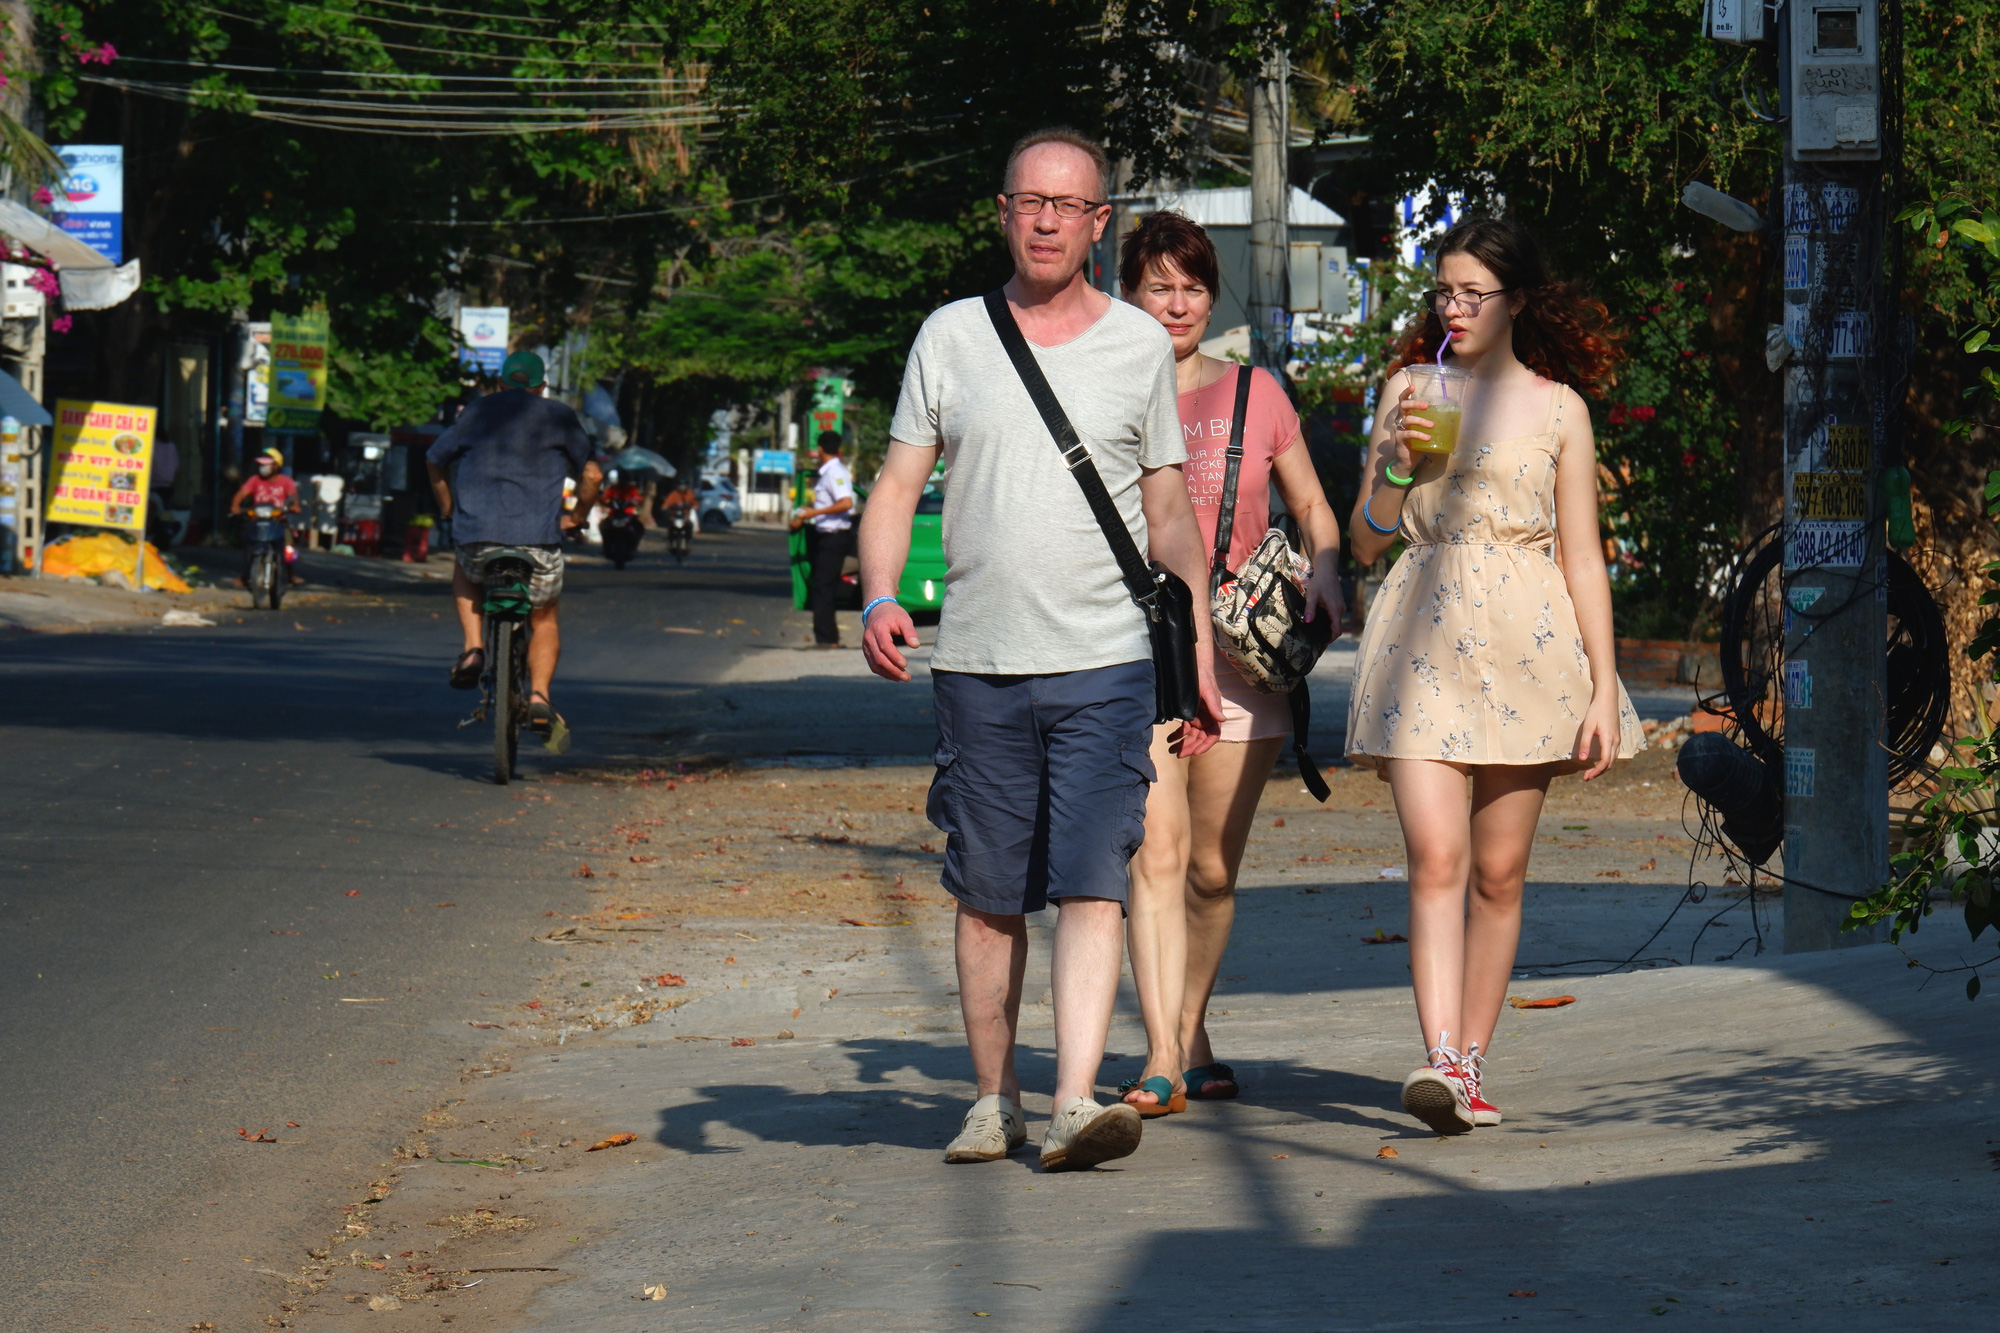 Russian travelers are seen on a street in Mui Ne, Binh Thuan Province, Vietnam, March 15, 2020. Photo: Son Lam / Tuoi Tre